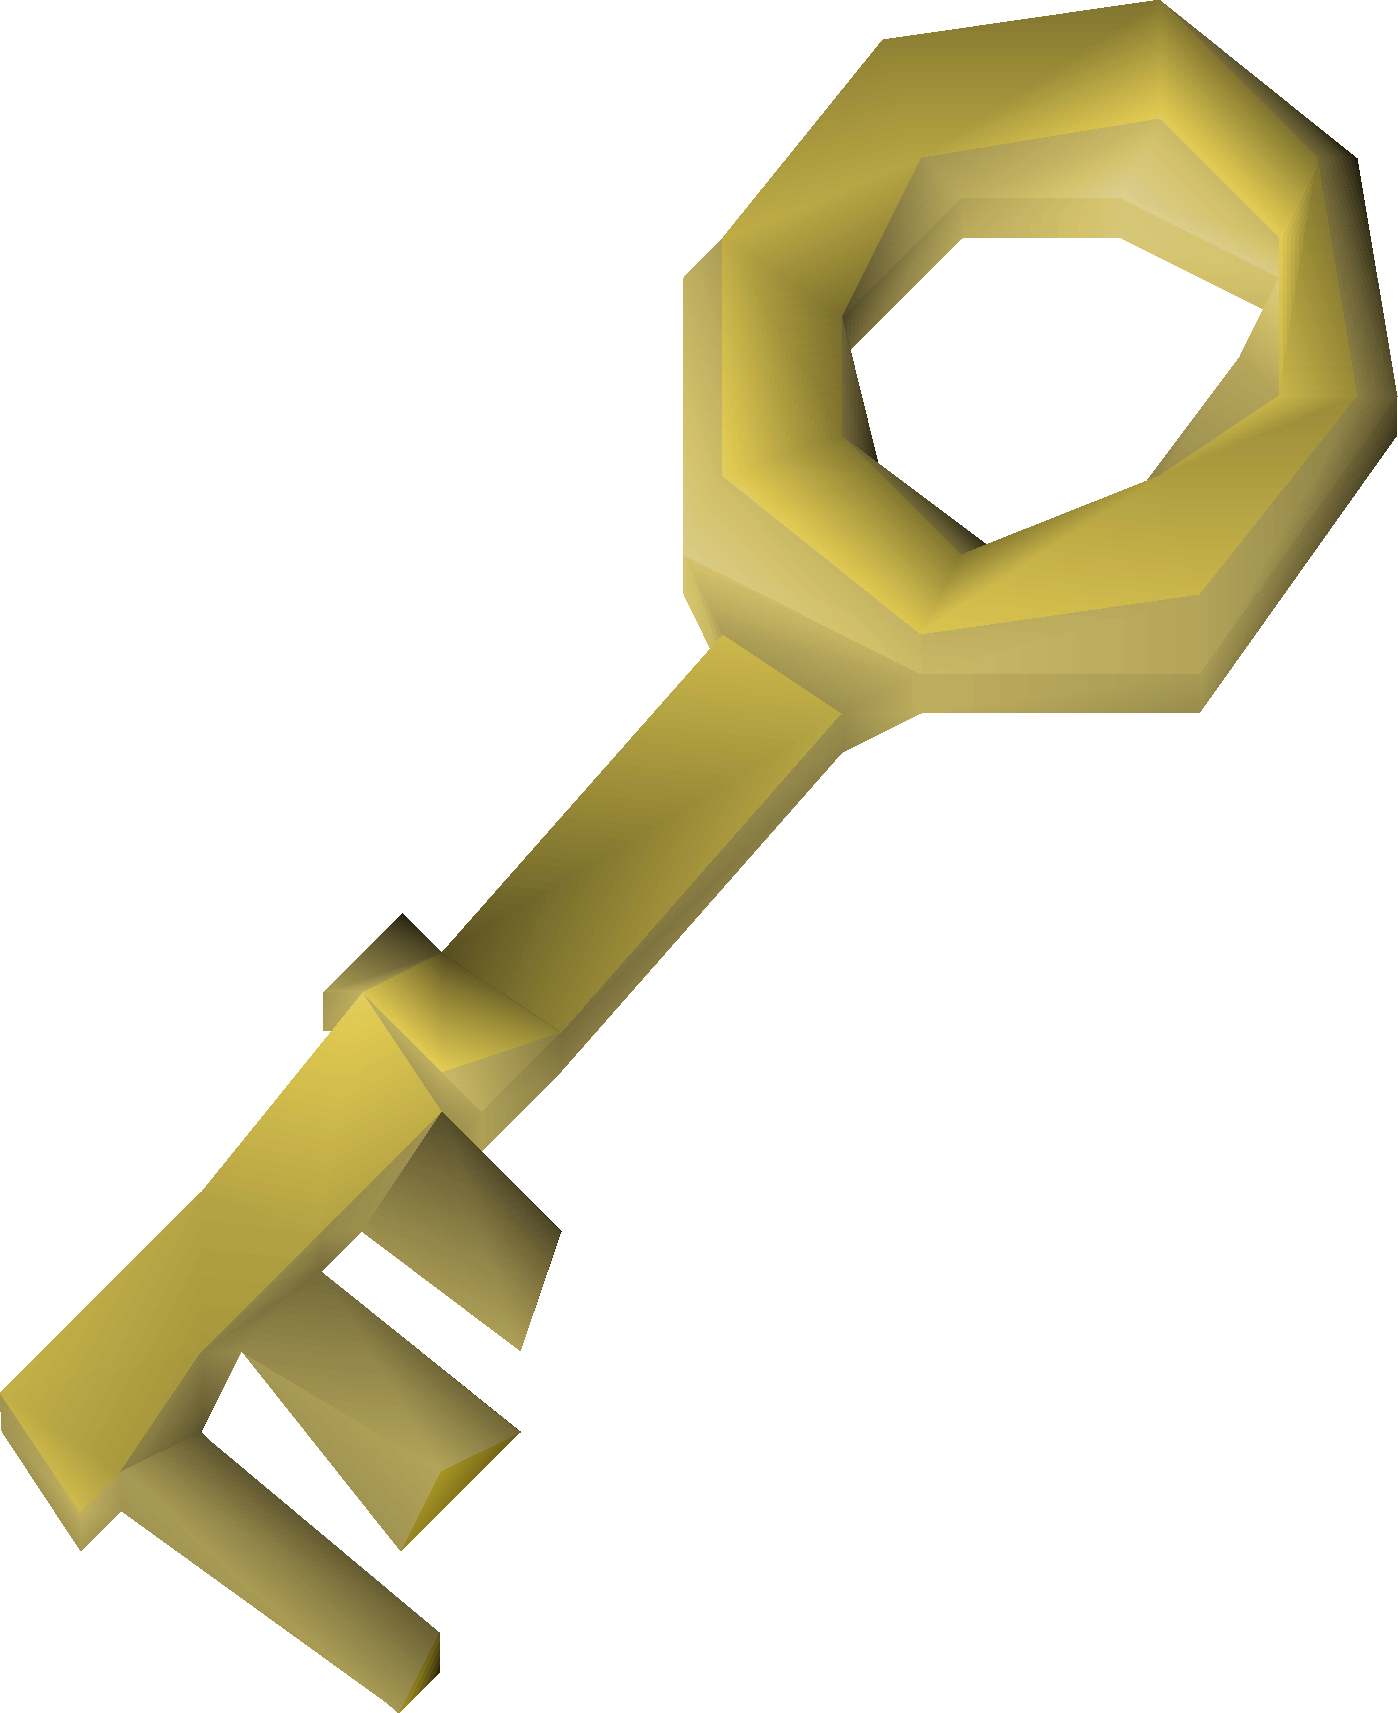 File:Ancestral key detail.png